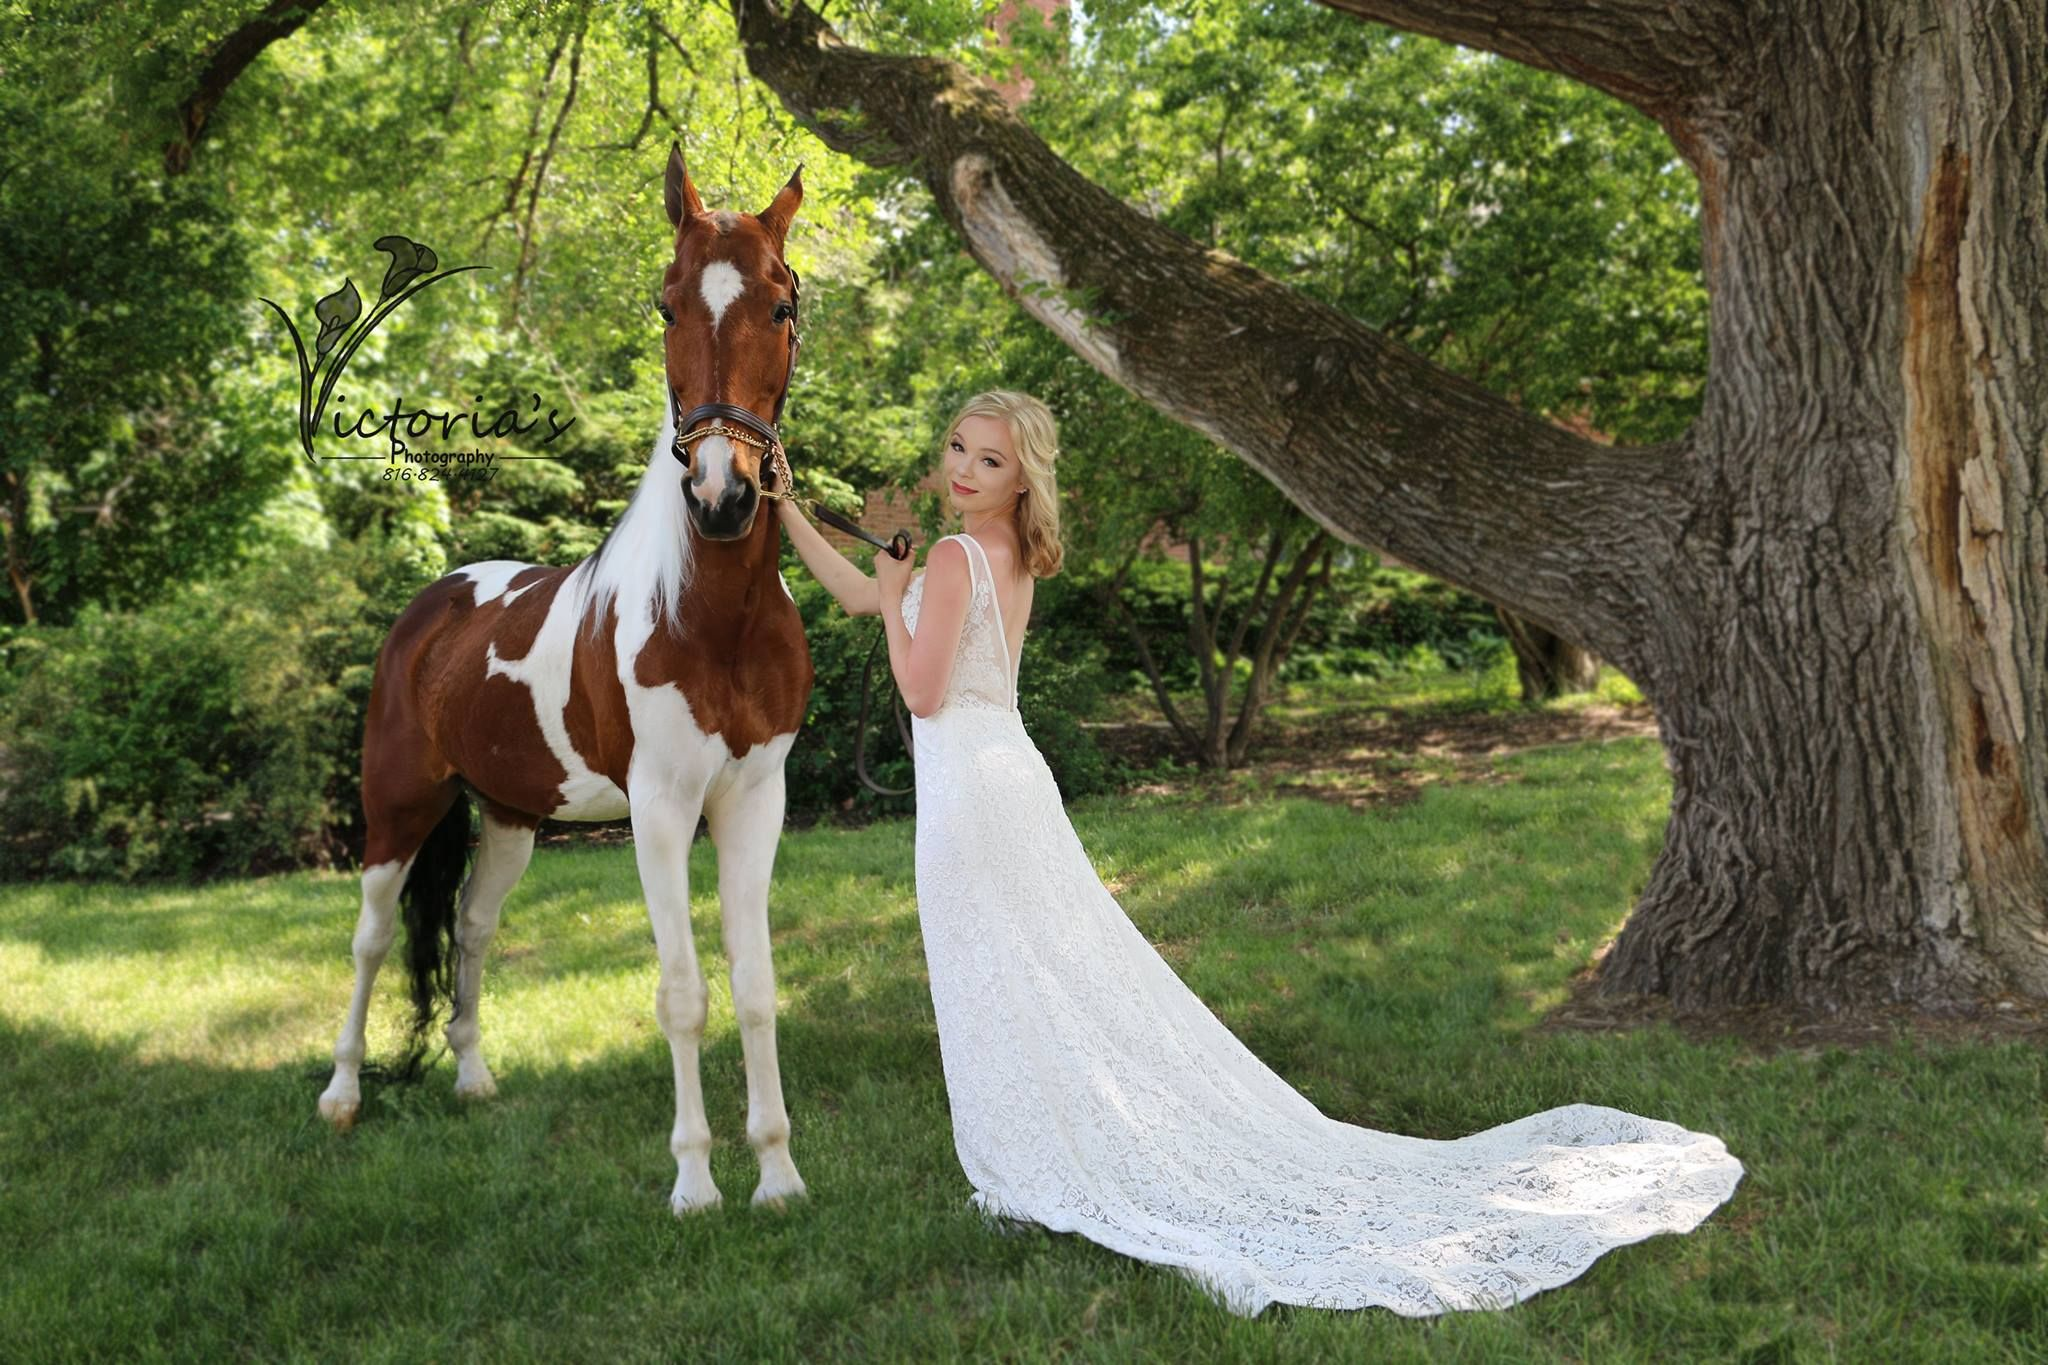 Claire model shoot kc weddings an american saddlebreed horse